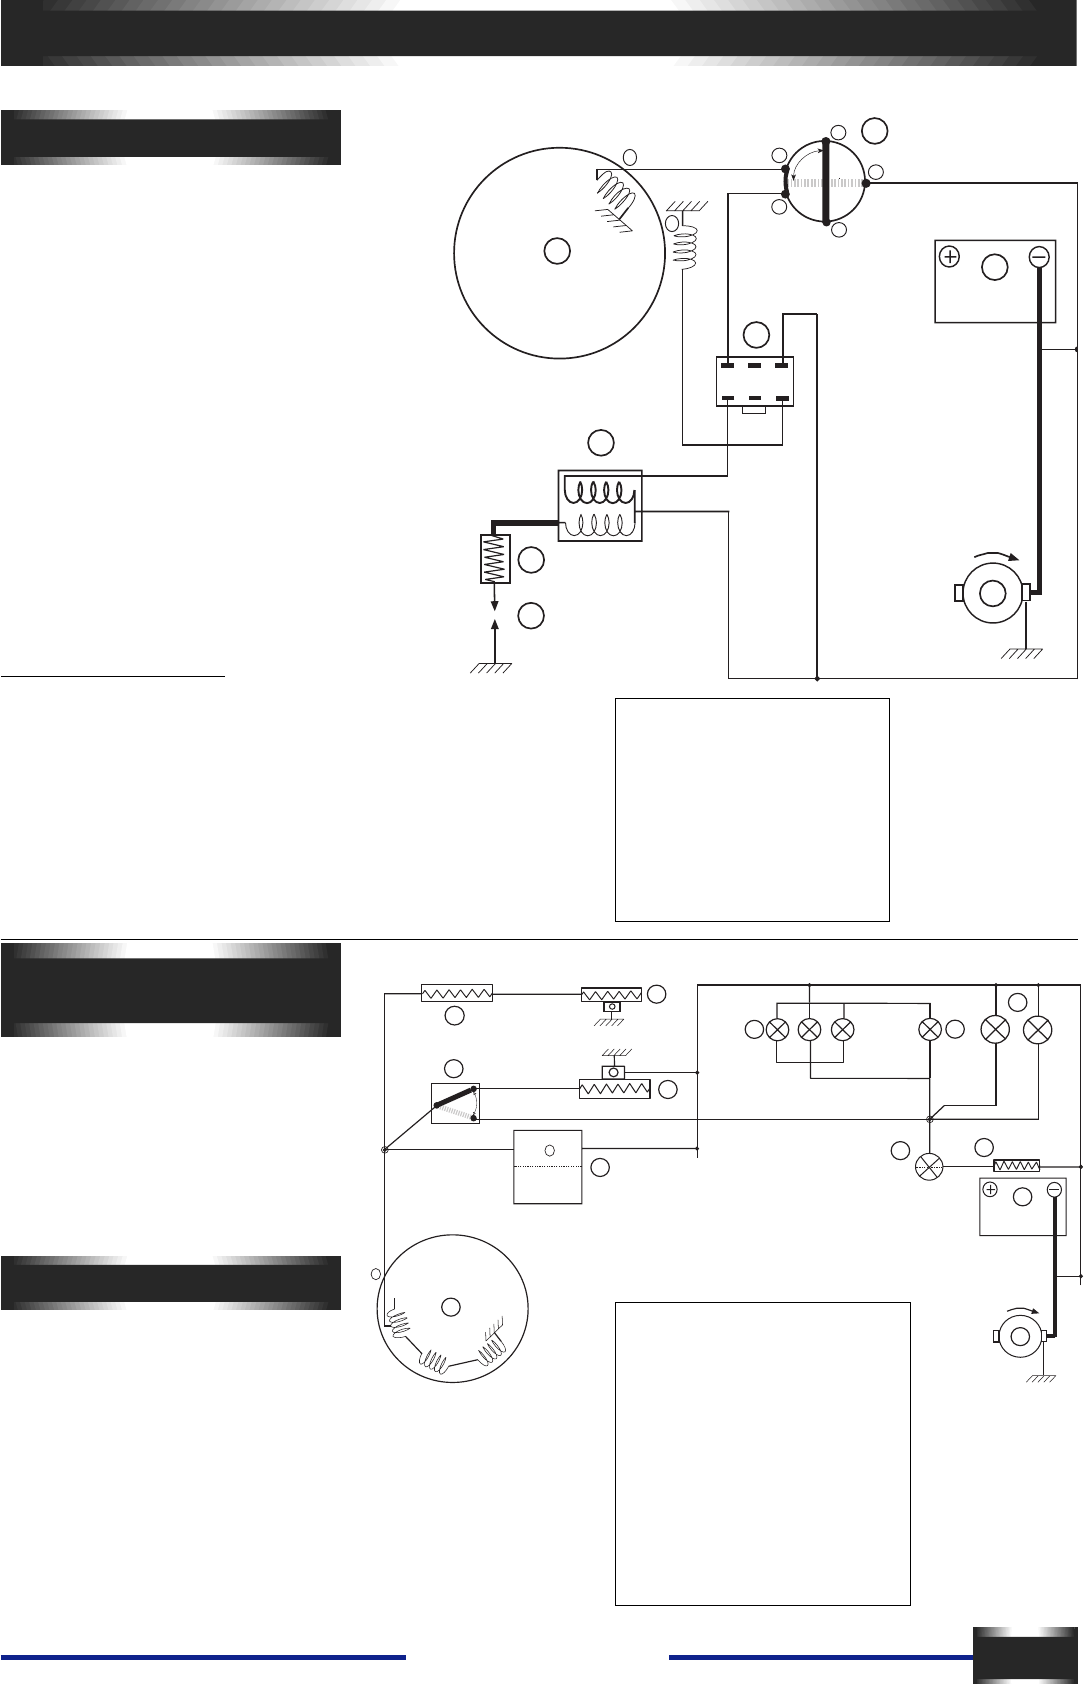 page 16 of peugeot motorcycle fb 0 1 2 4 user guide manualsonline com rh auto manualsonline com Light Switch Wiring Diagram Basic Electrical Schematic Diagrams